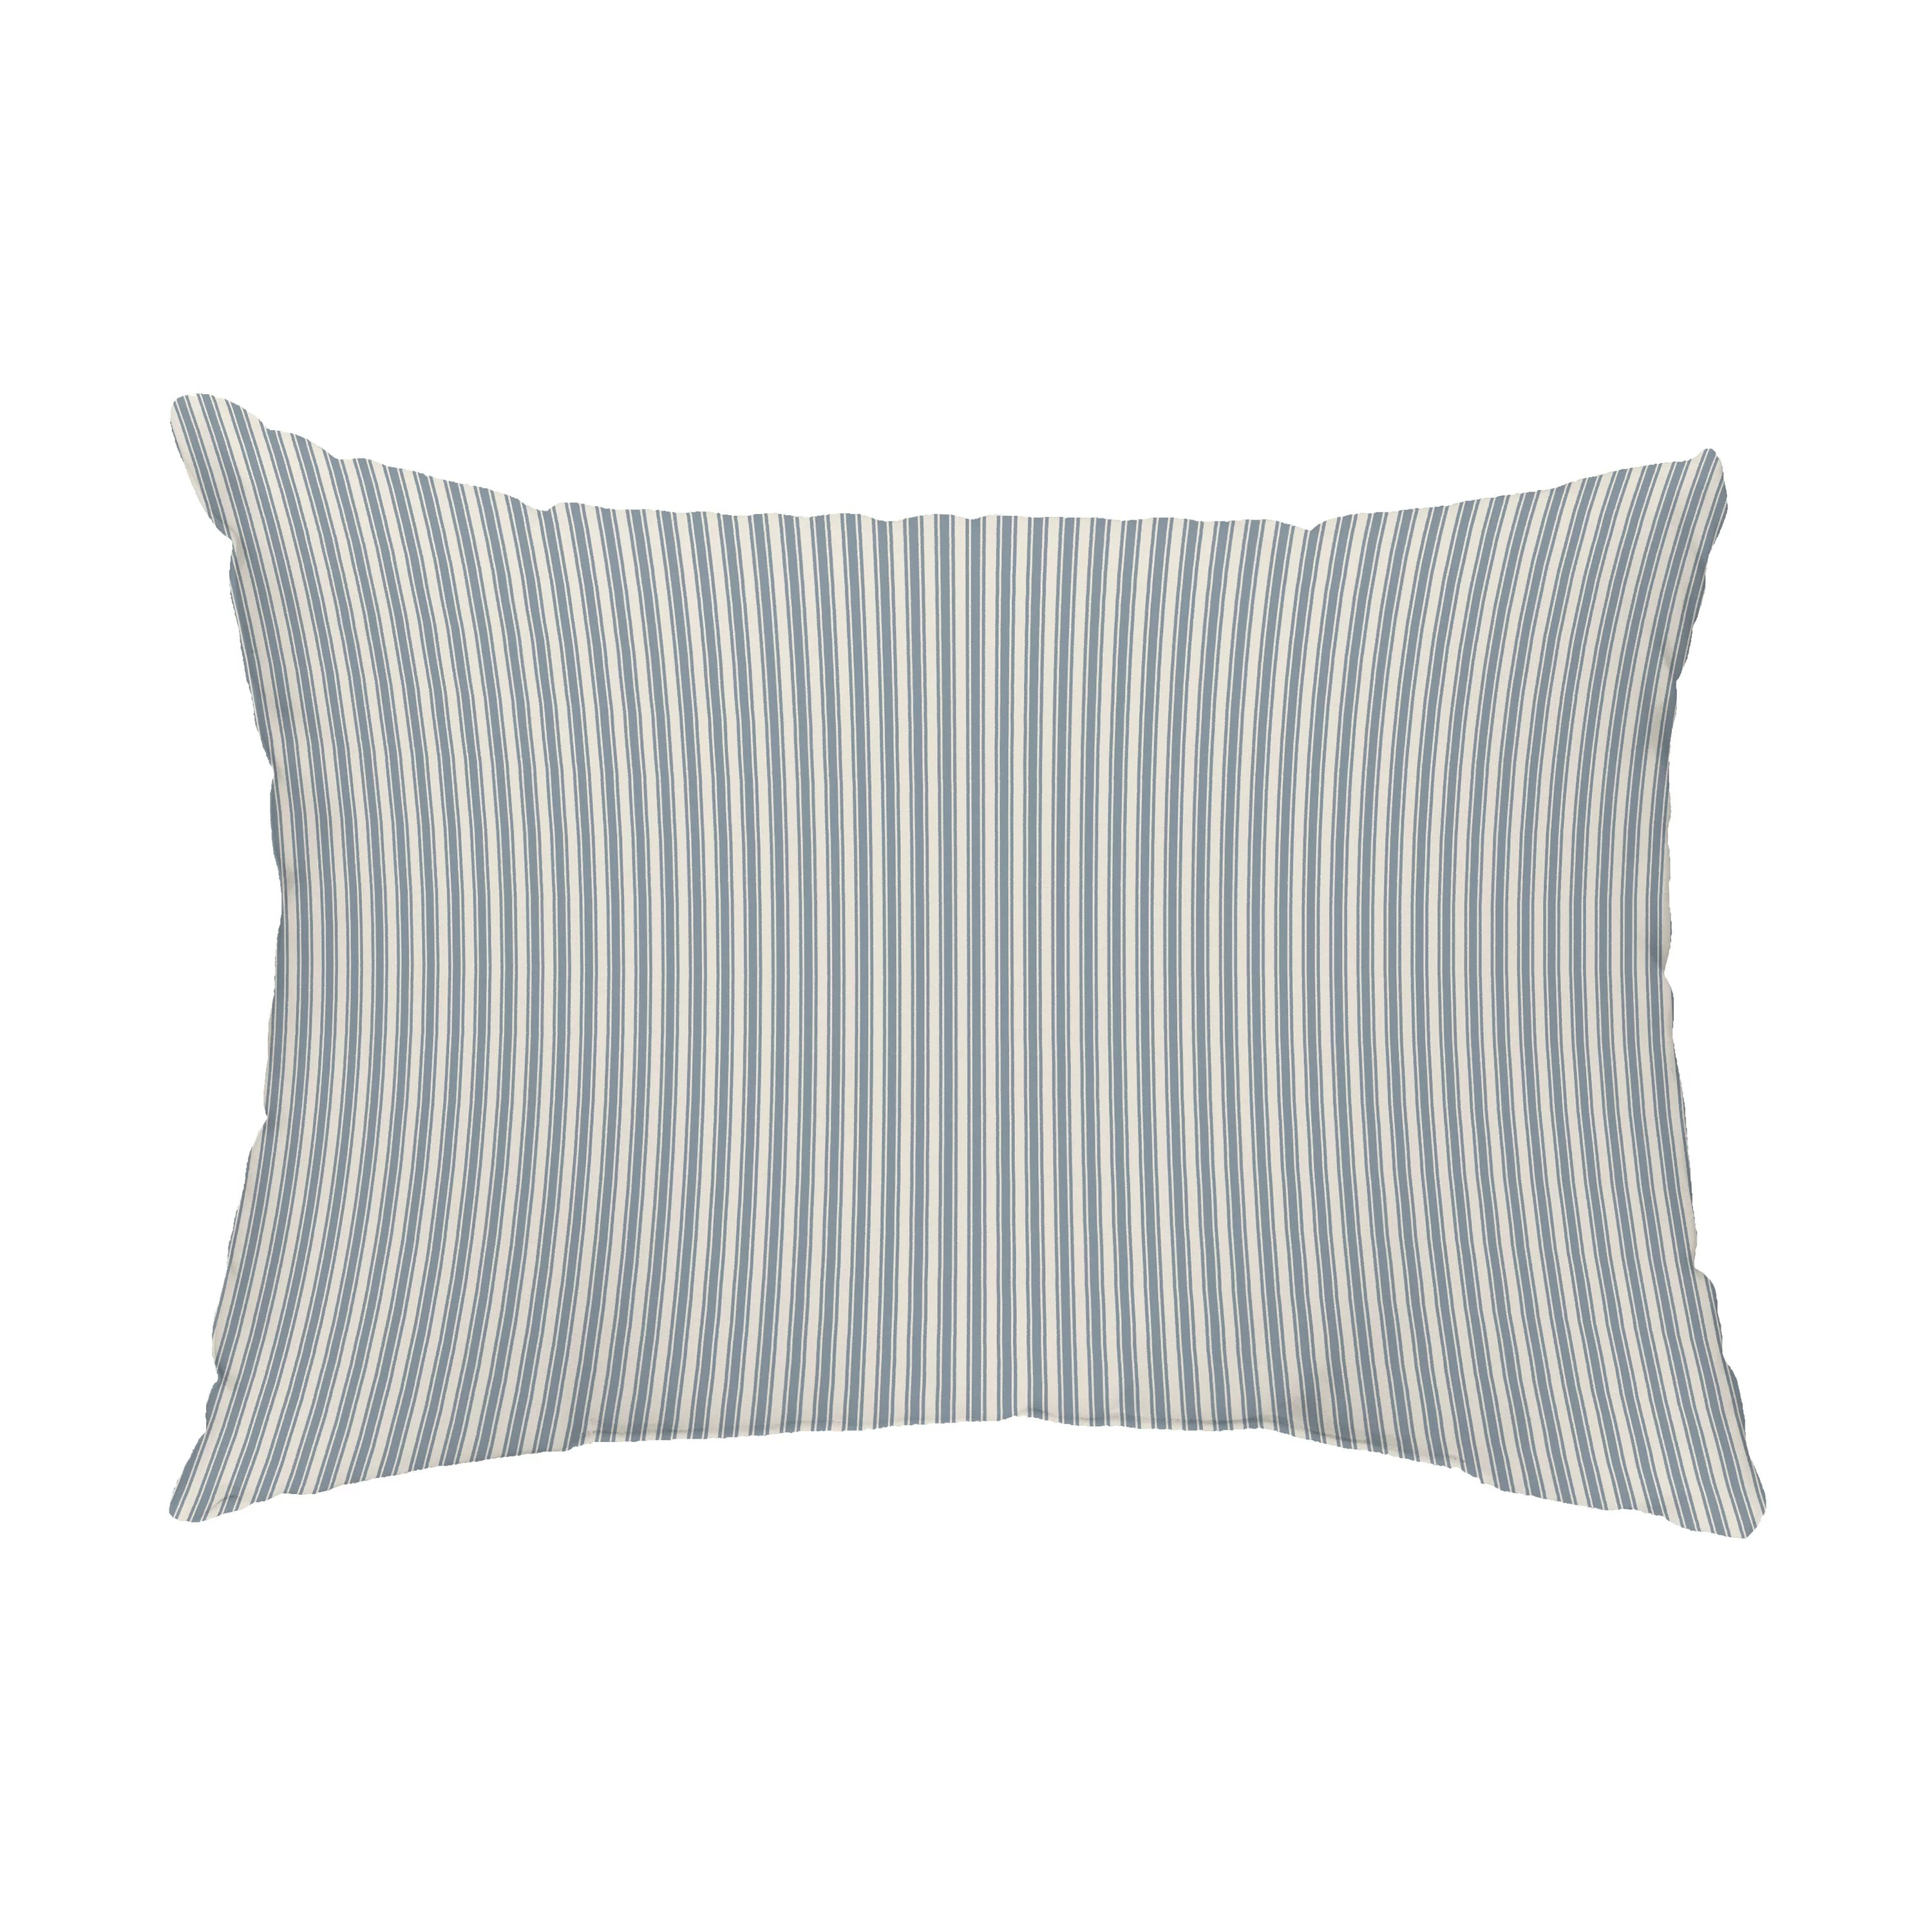 wycombe ticking stripe outdoor rectangular pillow cover insert